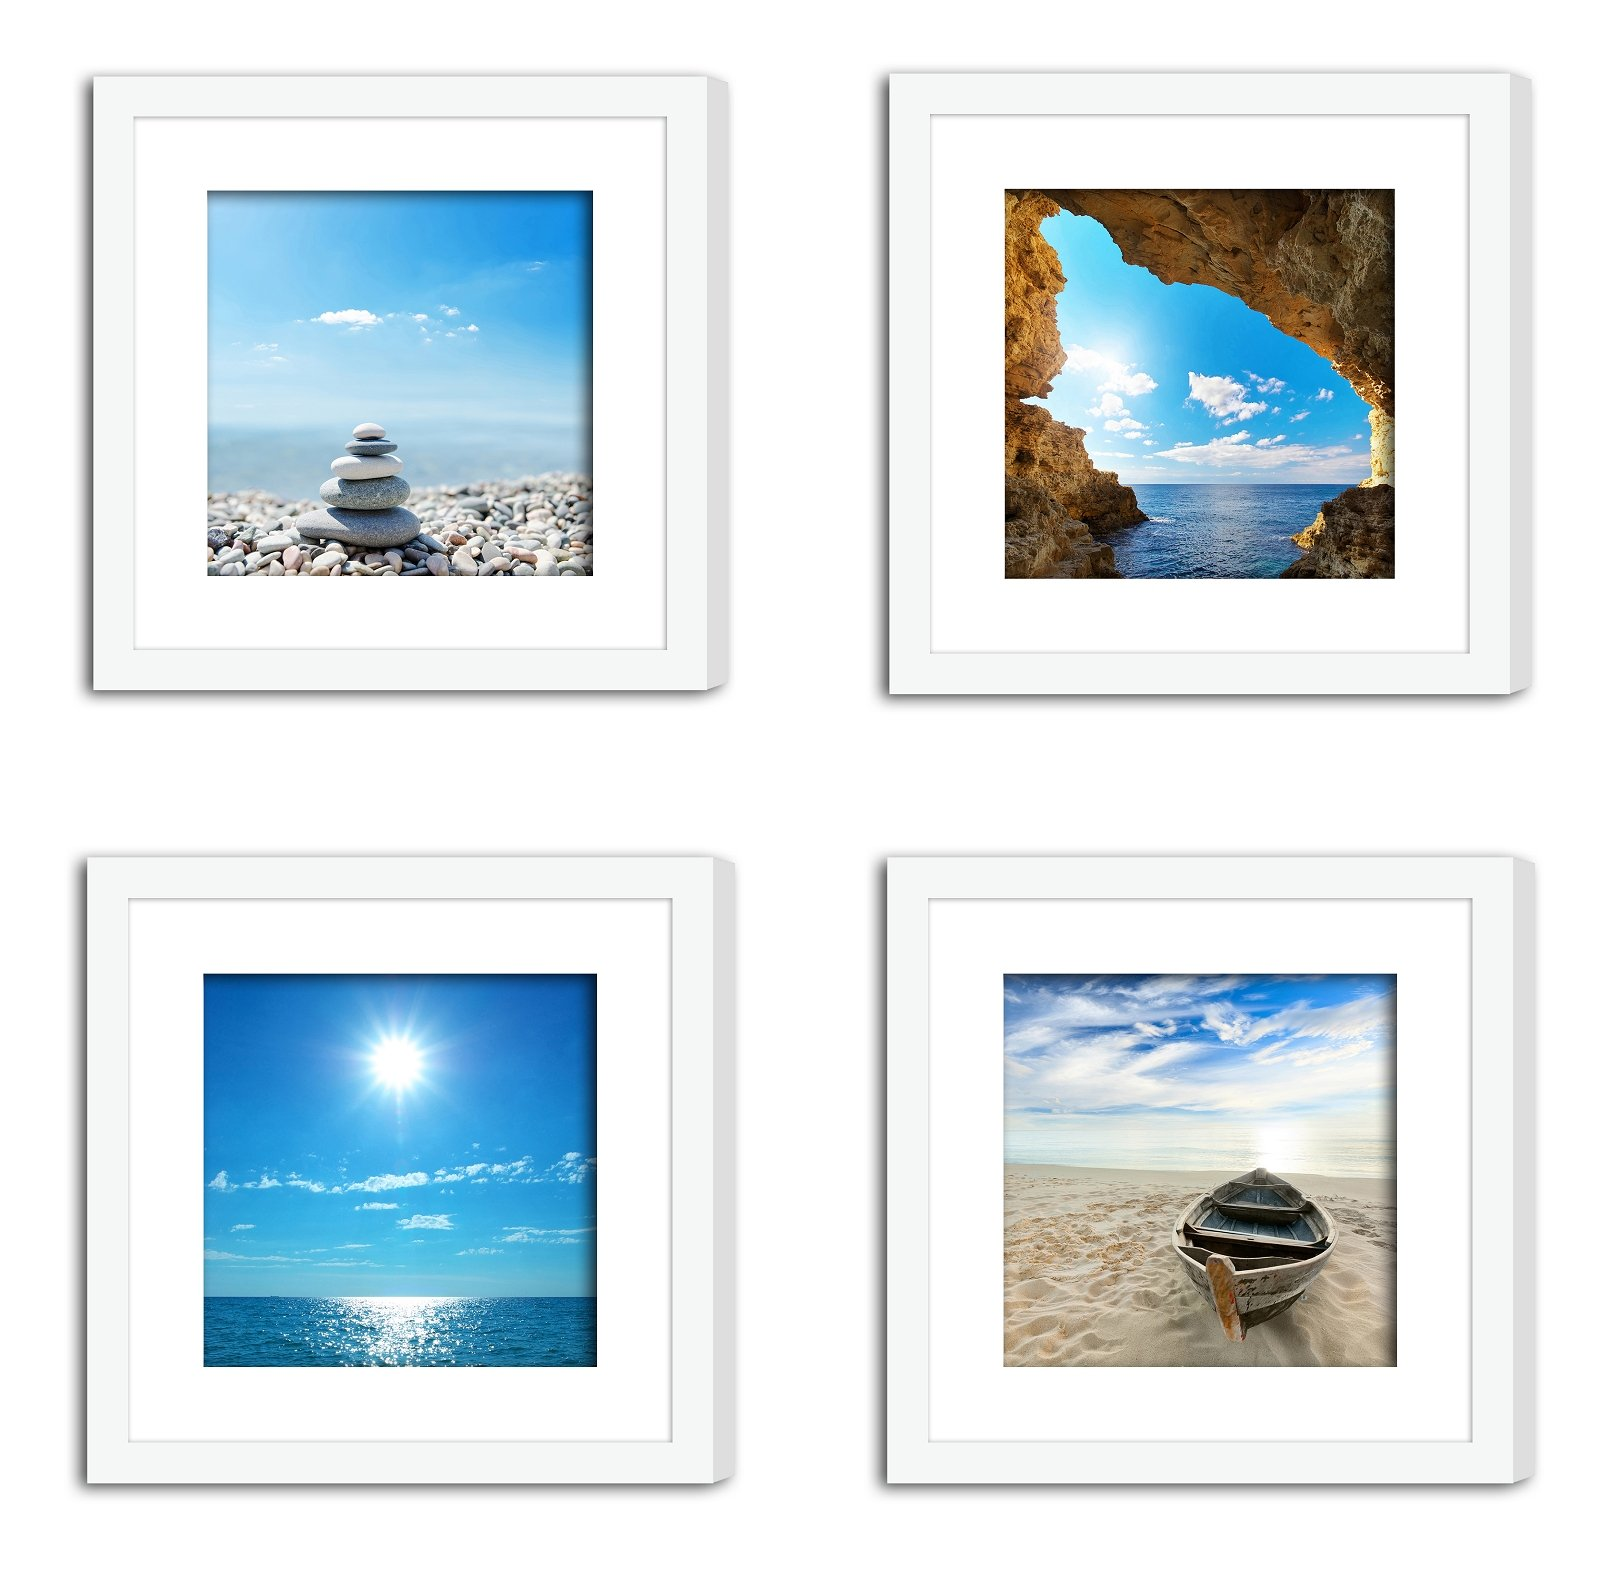 XUFLY 4Pcs 11x11 Tempered Glass Wood Frame White, with 2X Mat Fit for 8x8 4x4 inch Family Photo Picture, Desktop On Wall Square Support Office Decoration Sky Sea Cave Beach Yoga Stone (17) by XUFLY